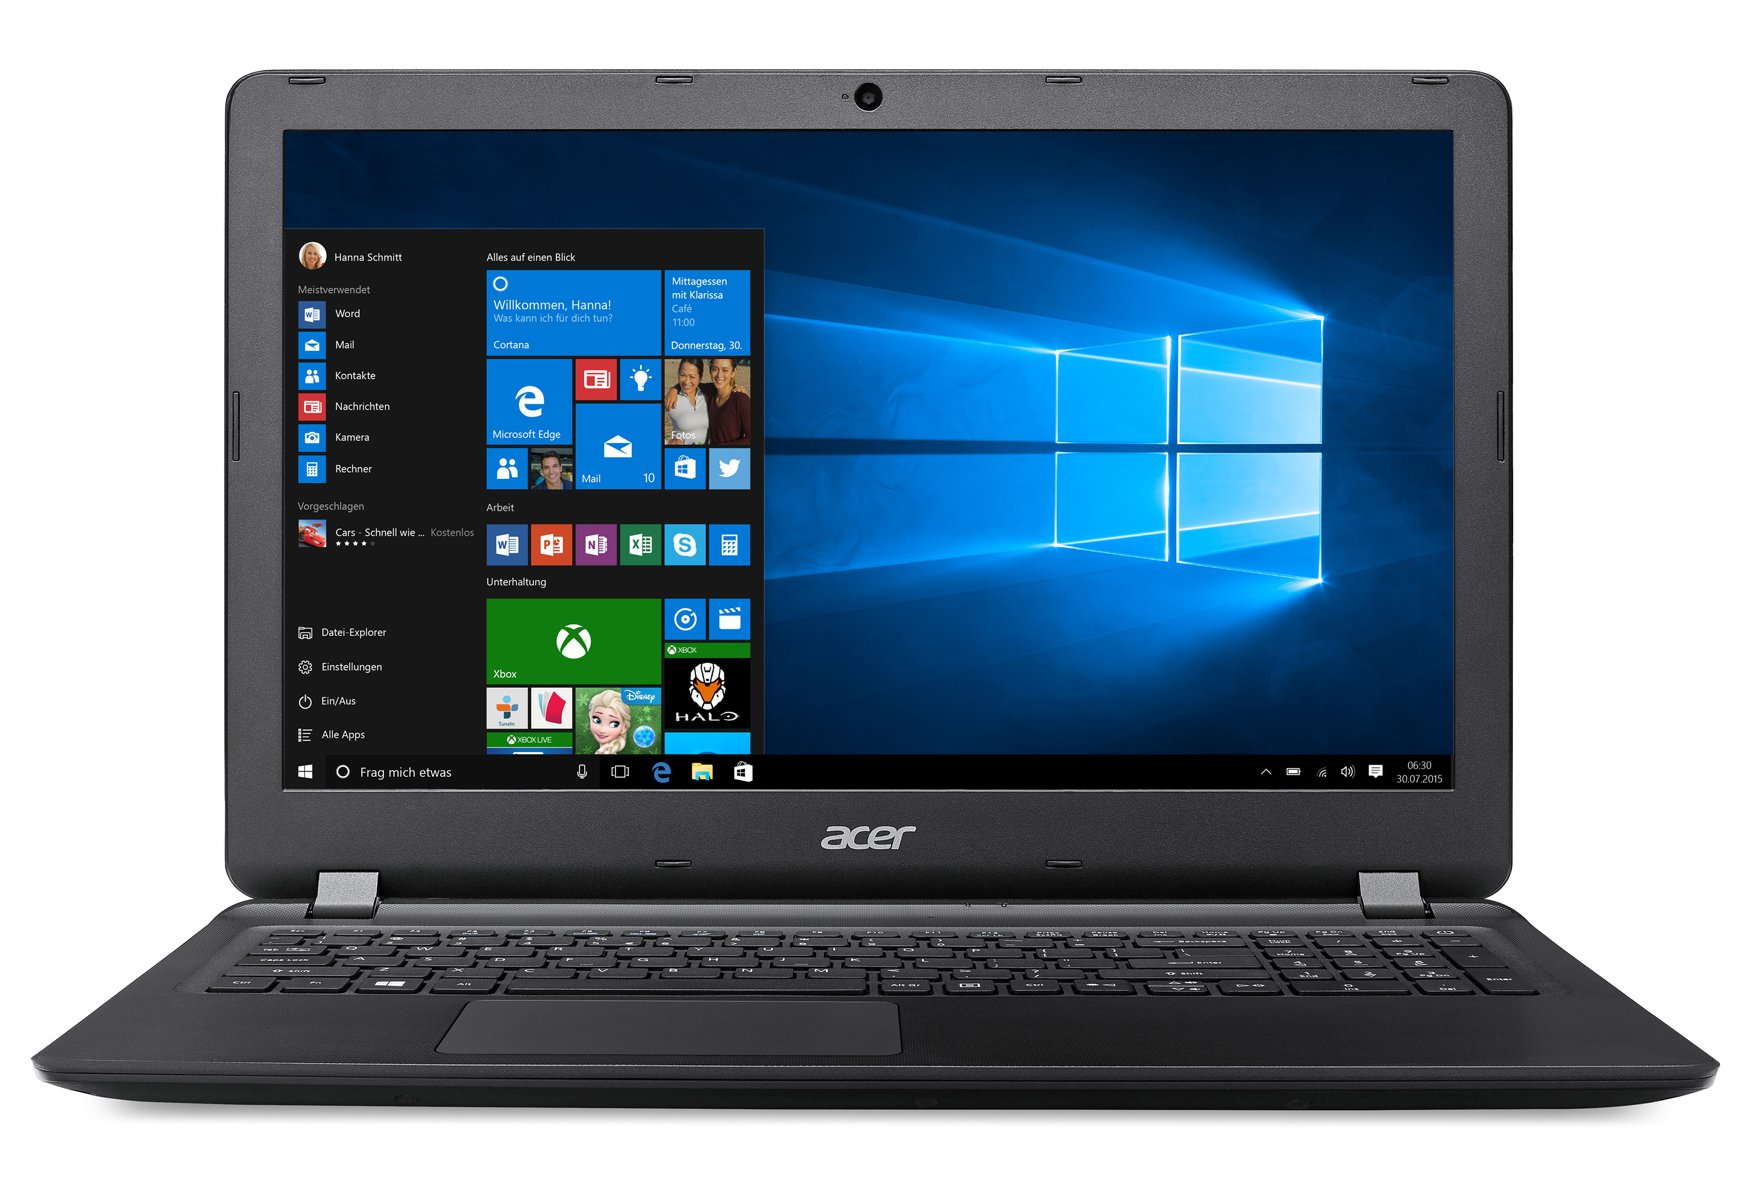 Laptop Acer Aspire ES1-523-26cr